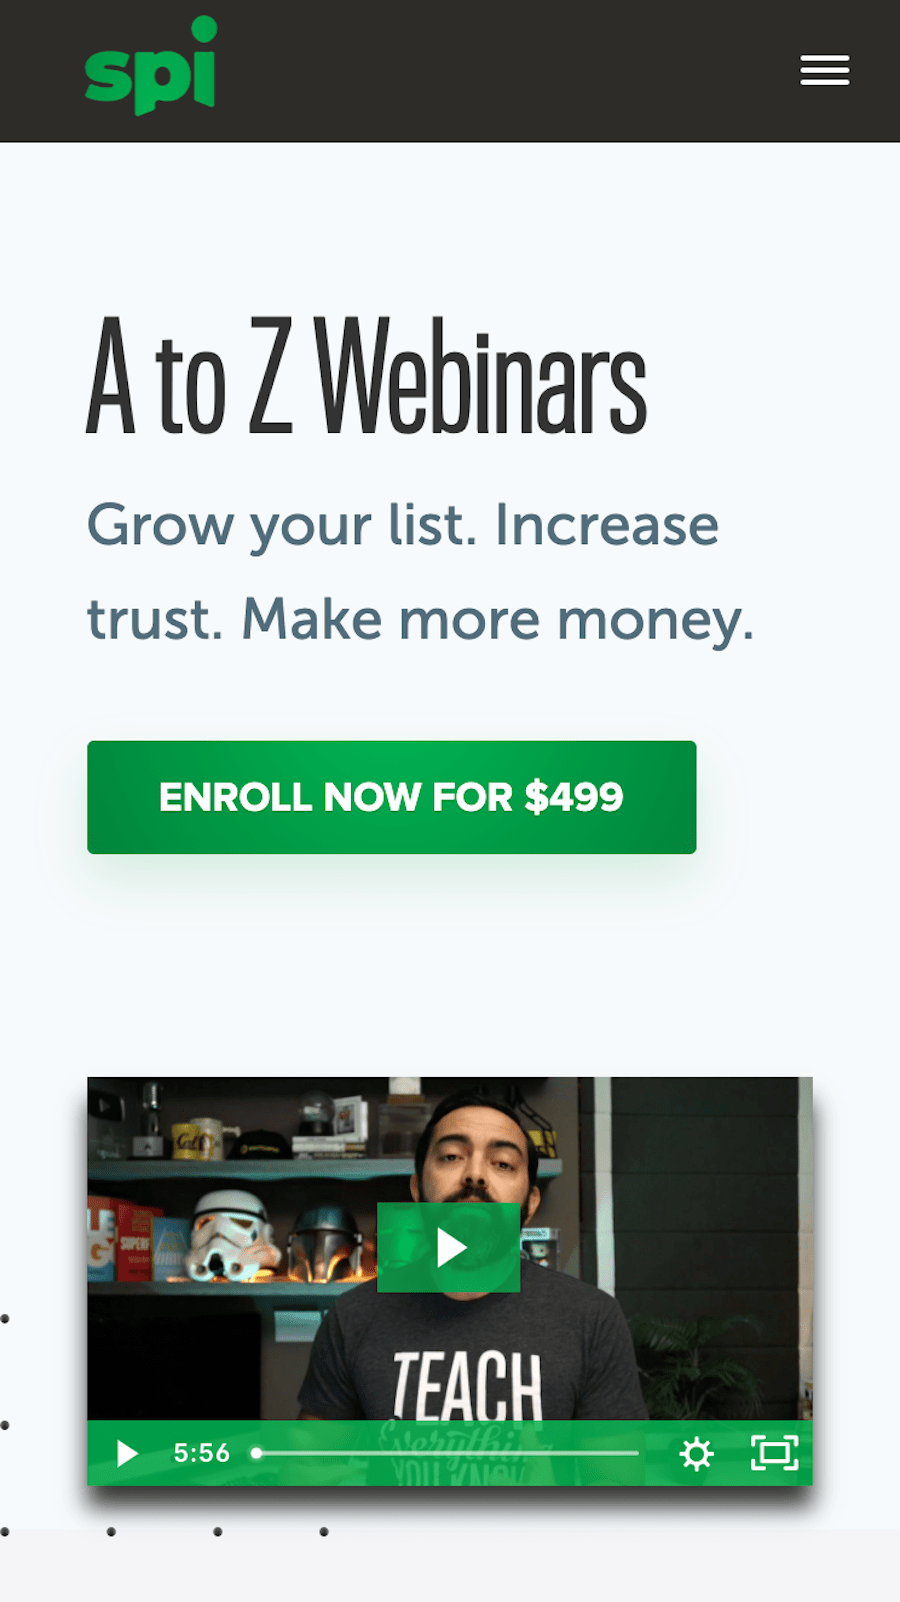 spi a to z webinars mobile sales page with video